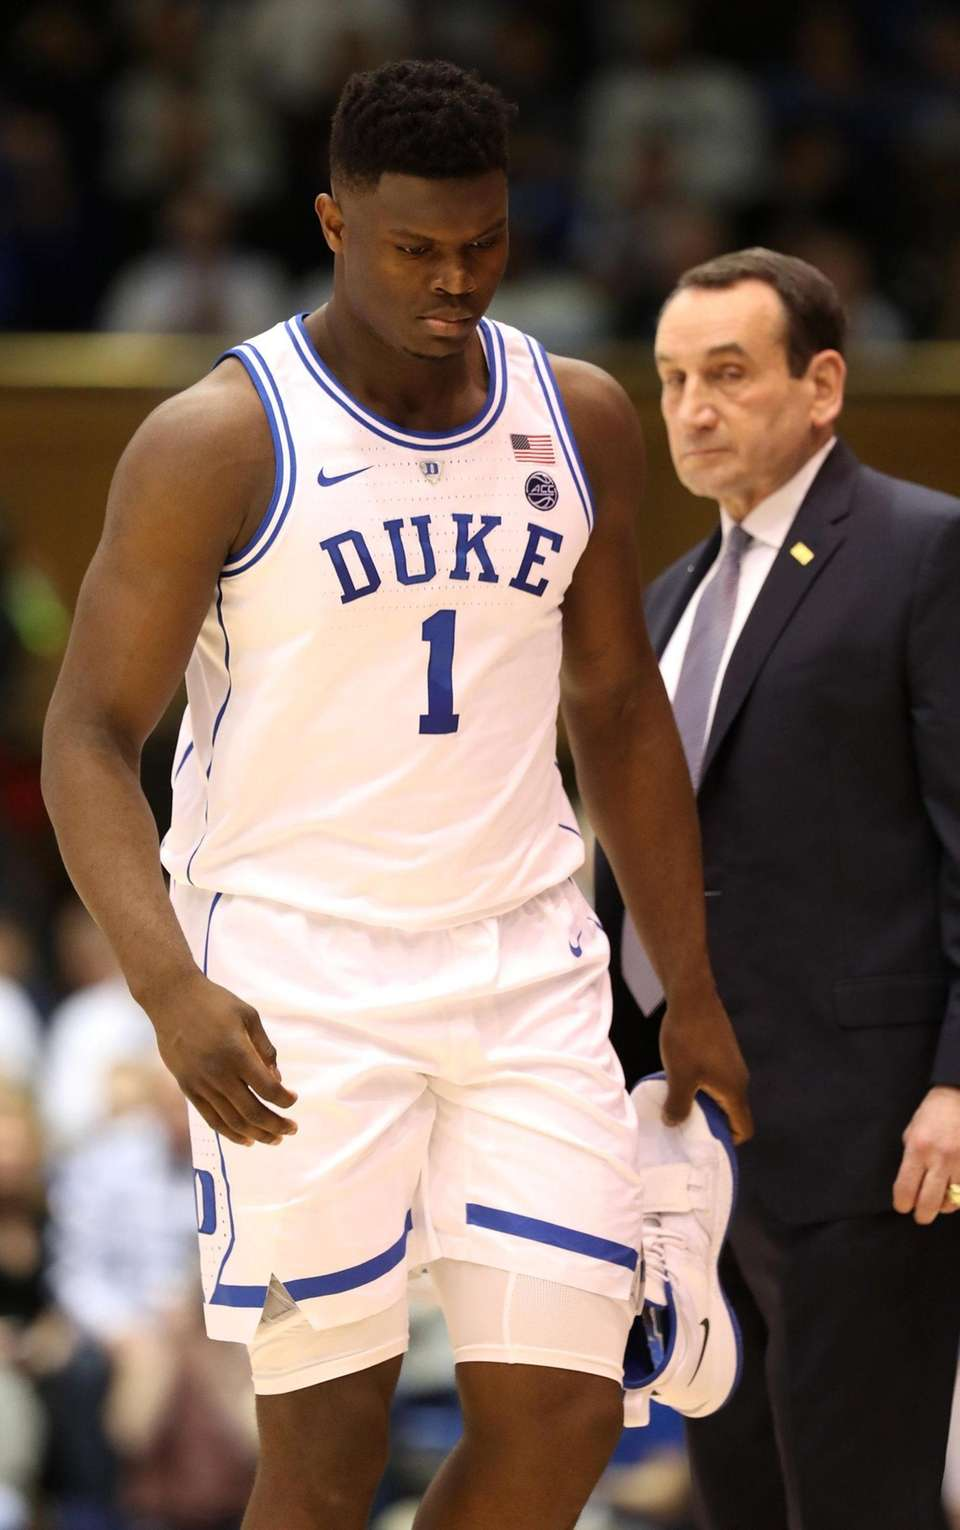 Head coach Mike Krzyzewski watches Zion Williamson of